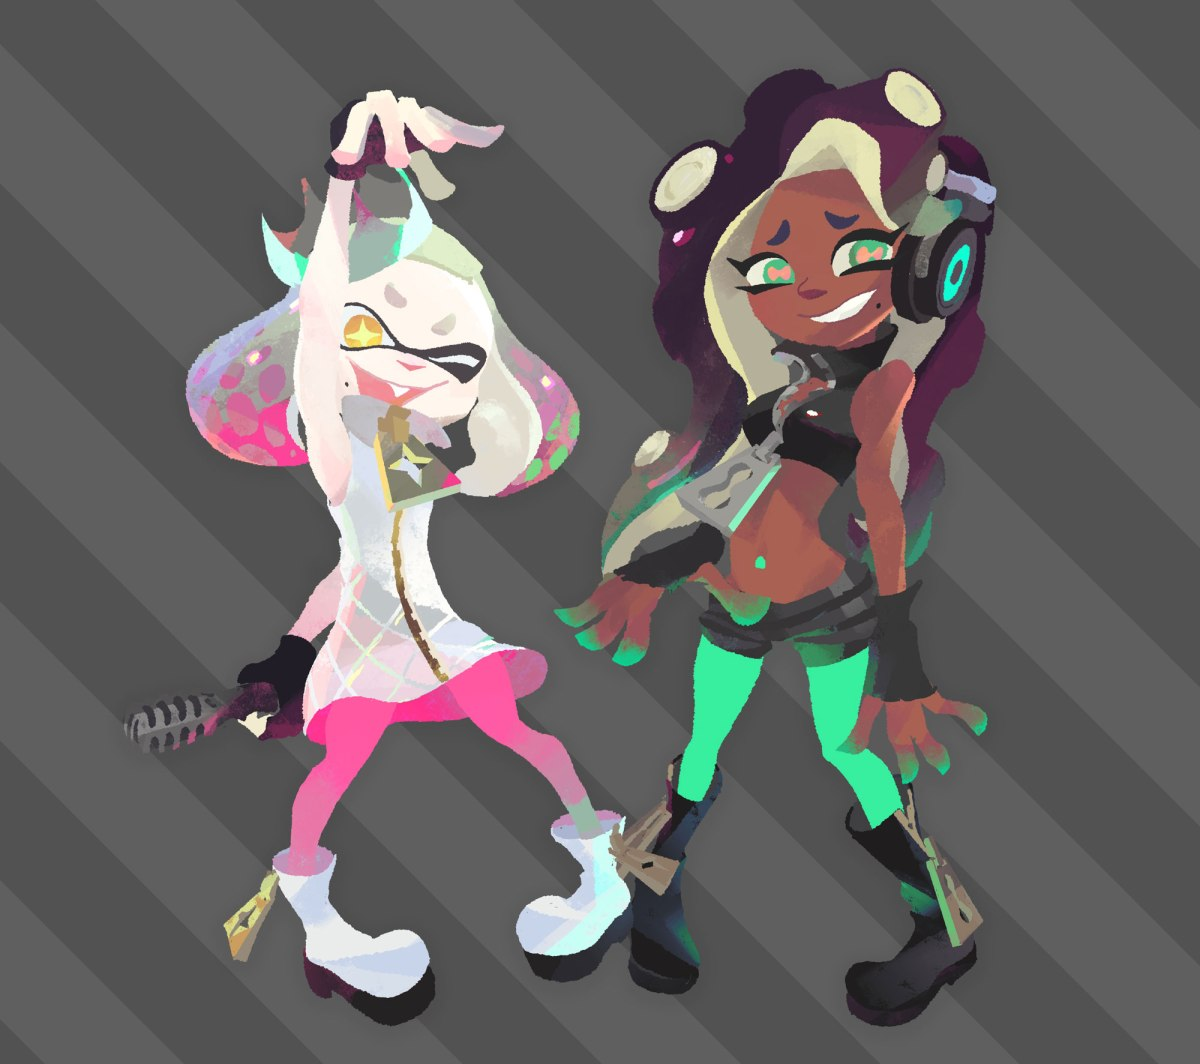 Splatoon2 illustraion of Off The Hook hosts Pearl and Marina. From Nintendo